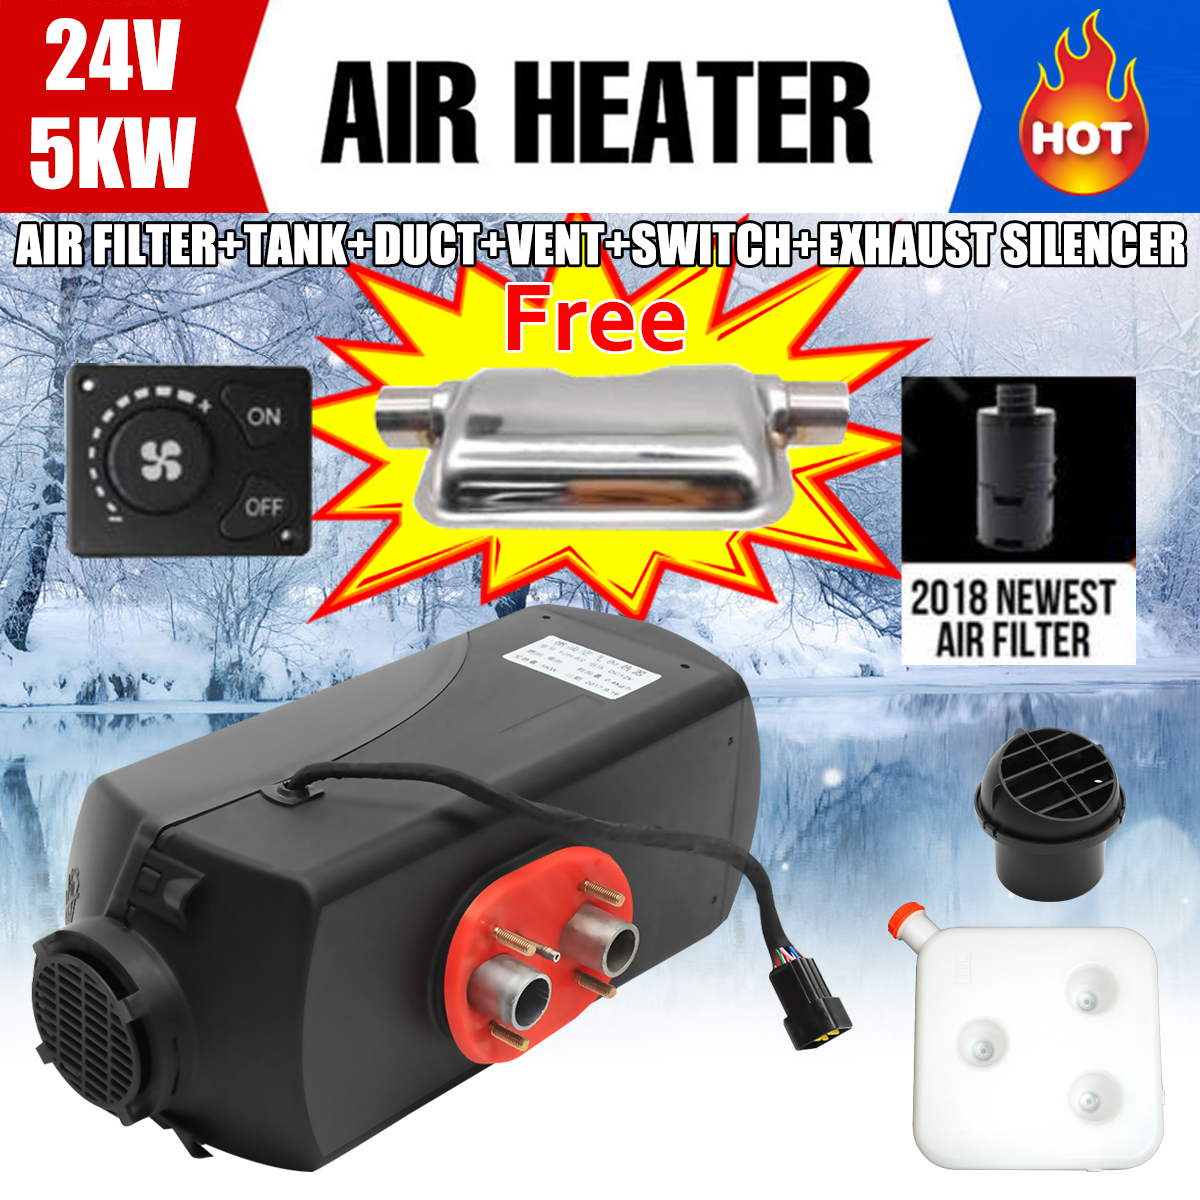 Car Heater 24V 5KW Diesels Air Parking Heater for RV, Motorhome Trailer, Trucks, Boats HOT Knob Switch Silencer Muffler For Free high quality intake silencer and exhaust muffler for air parking heater